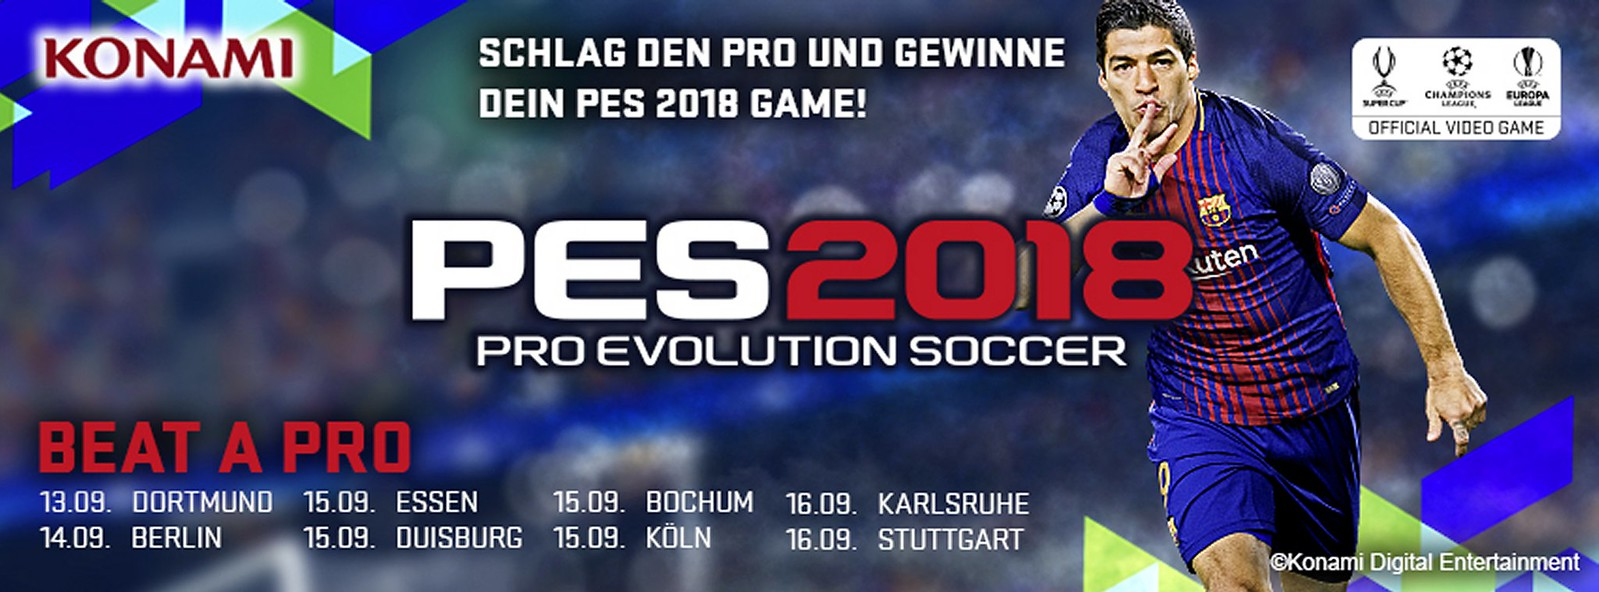 PES2018_Beat a Pro_Banner